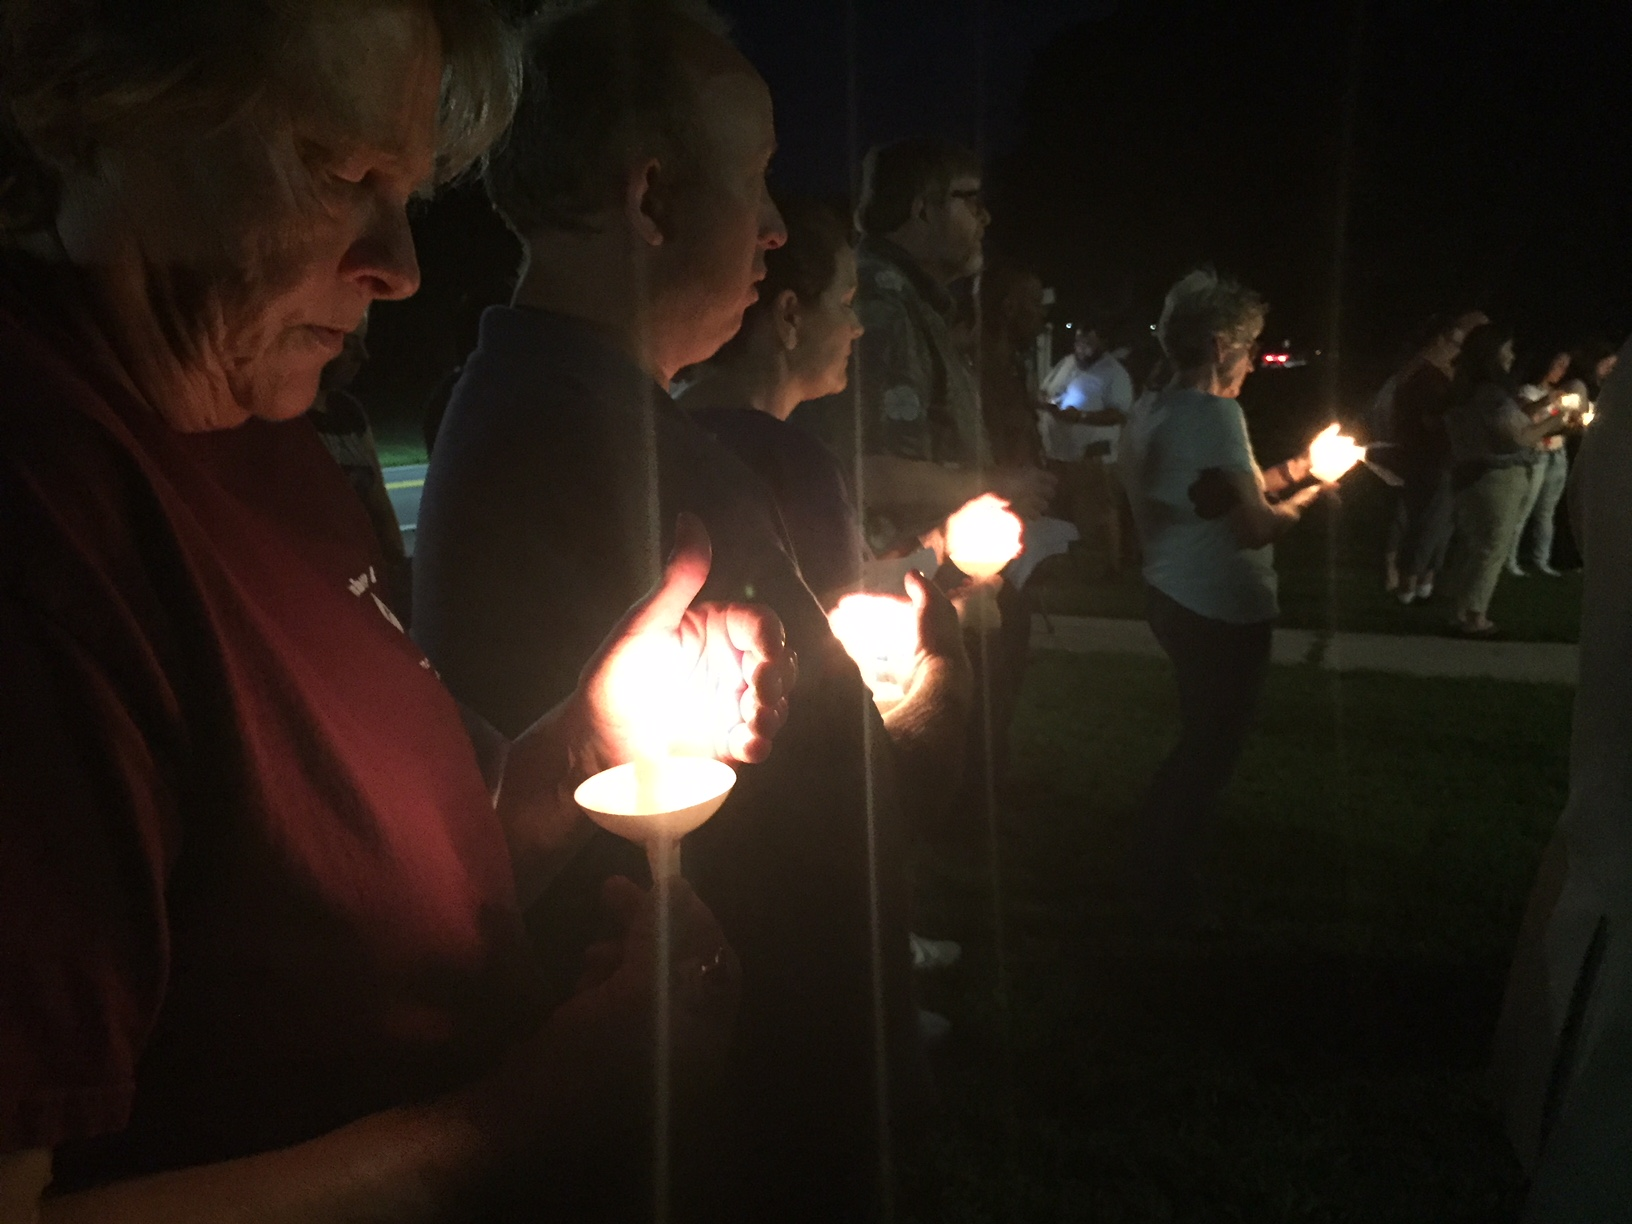 Members of the Perryman community participate in a candle-light prayer vigil at Cranberry UMC Sept. 21 following the mass shooting at the Rite Aid Distributoin Center one mile away. Photo by Erik Alsgaard.